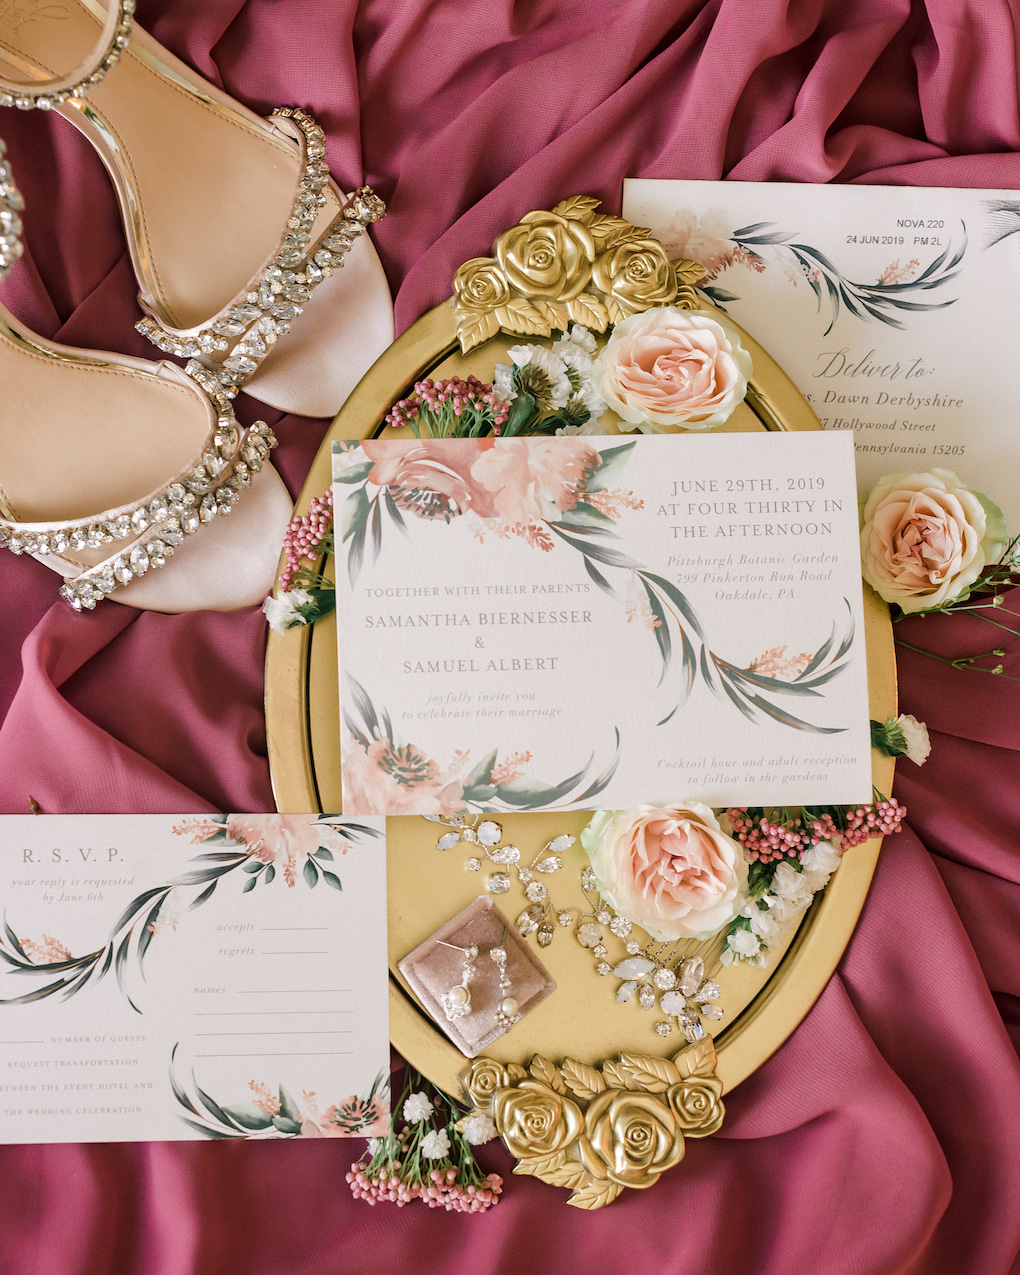 Pink floral wedding invitations: Romantic Delicate Summer Wedding in PIttsburgh planned by Exhale Events. See more at exhale-events.com!